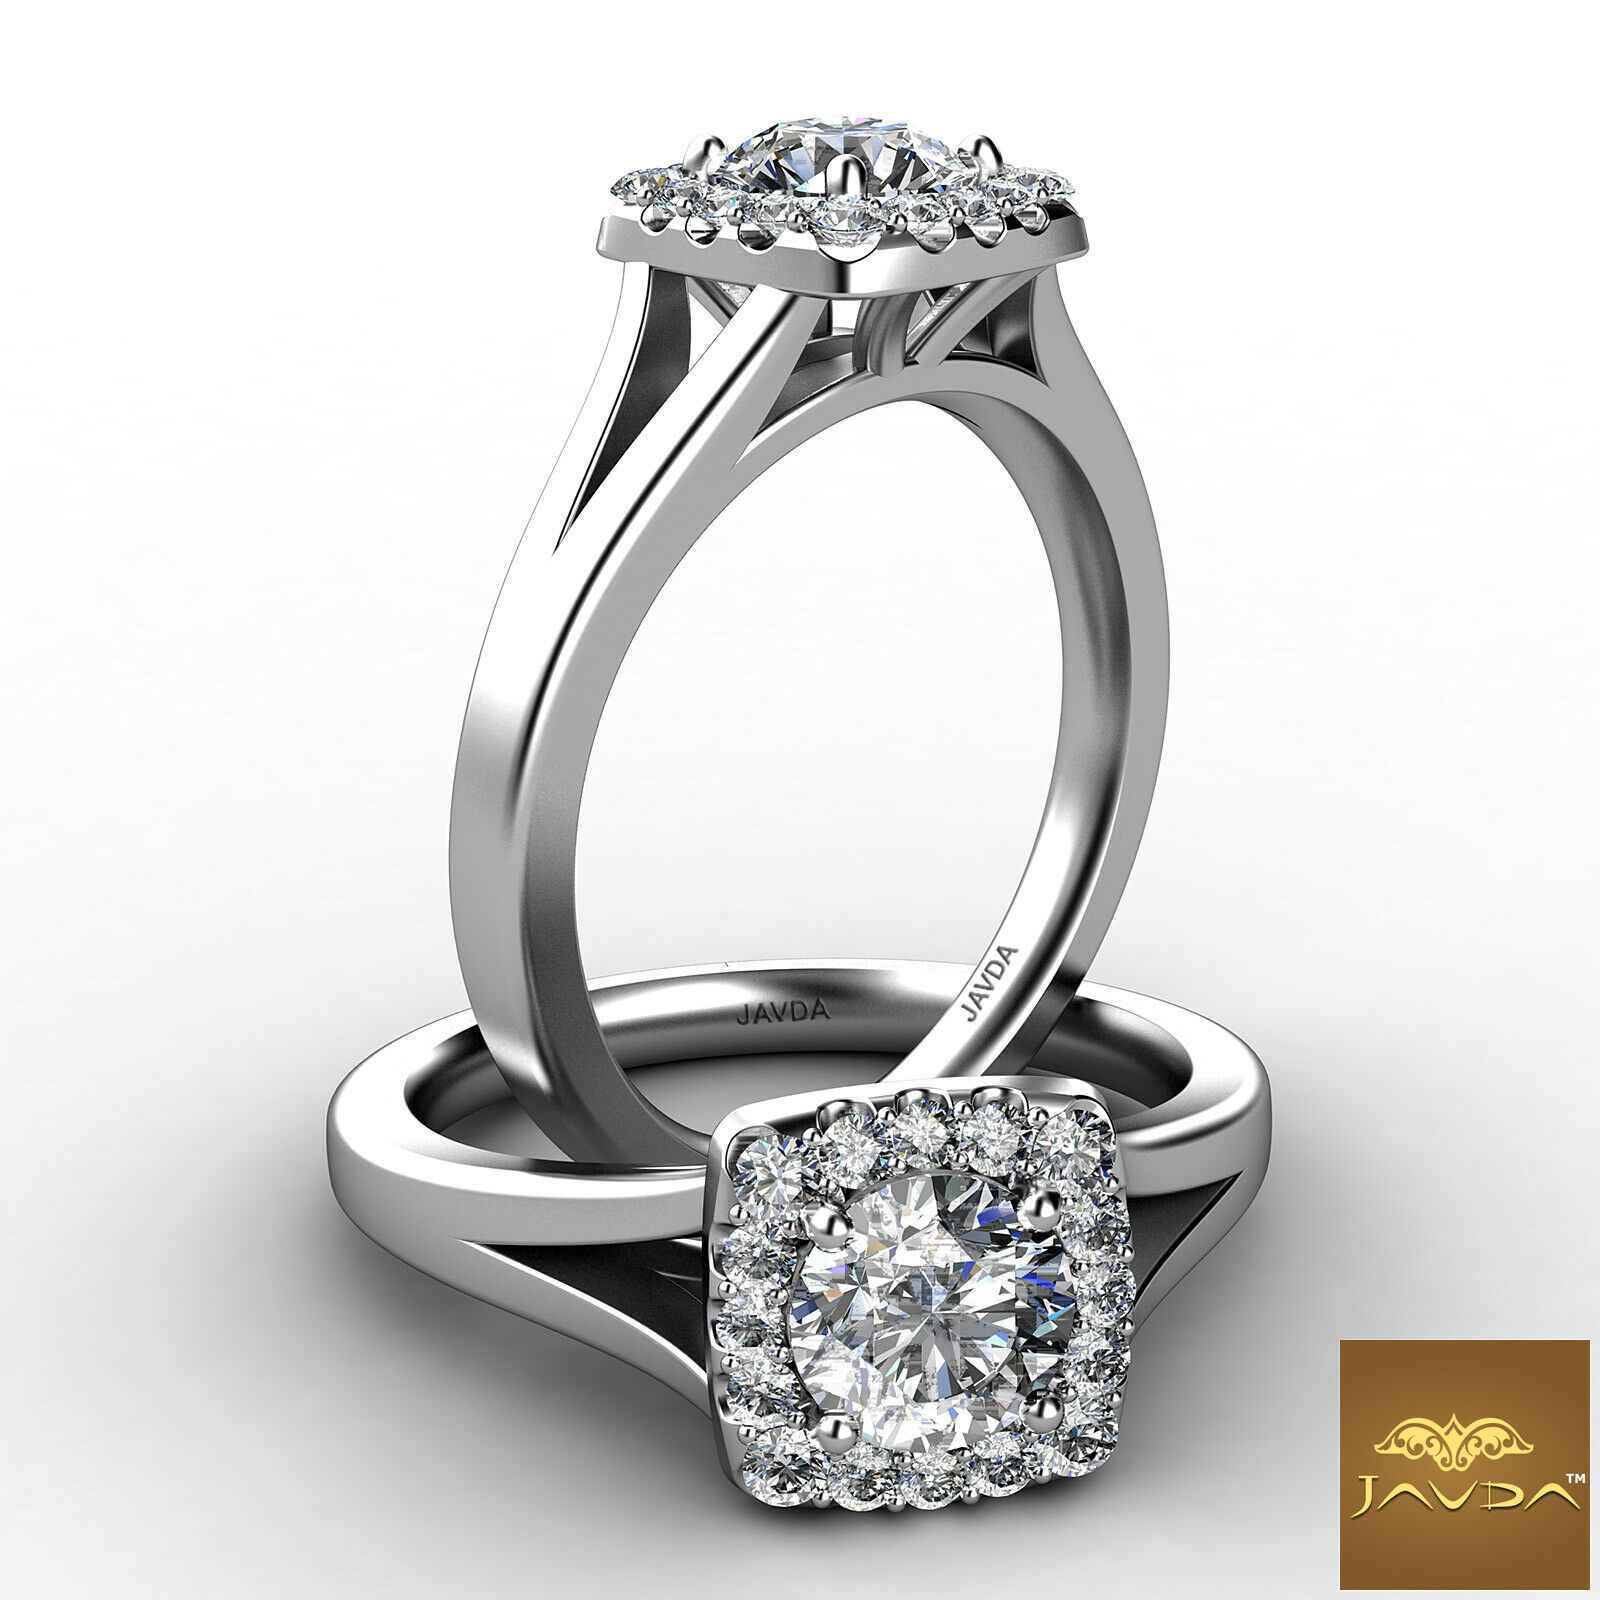 0.7ctw Halo Split Shank Cathedral Round Diamond Engagement Ring GIA H-VS1 W Gold